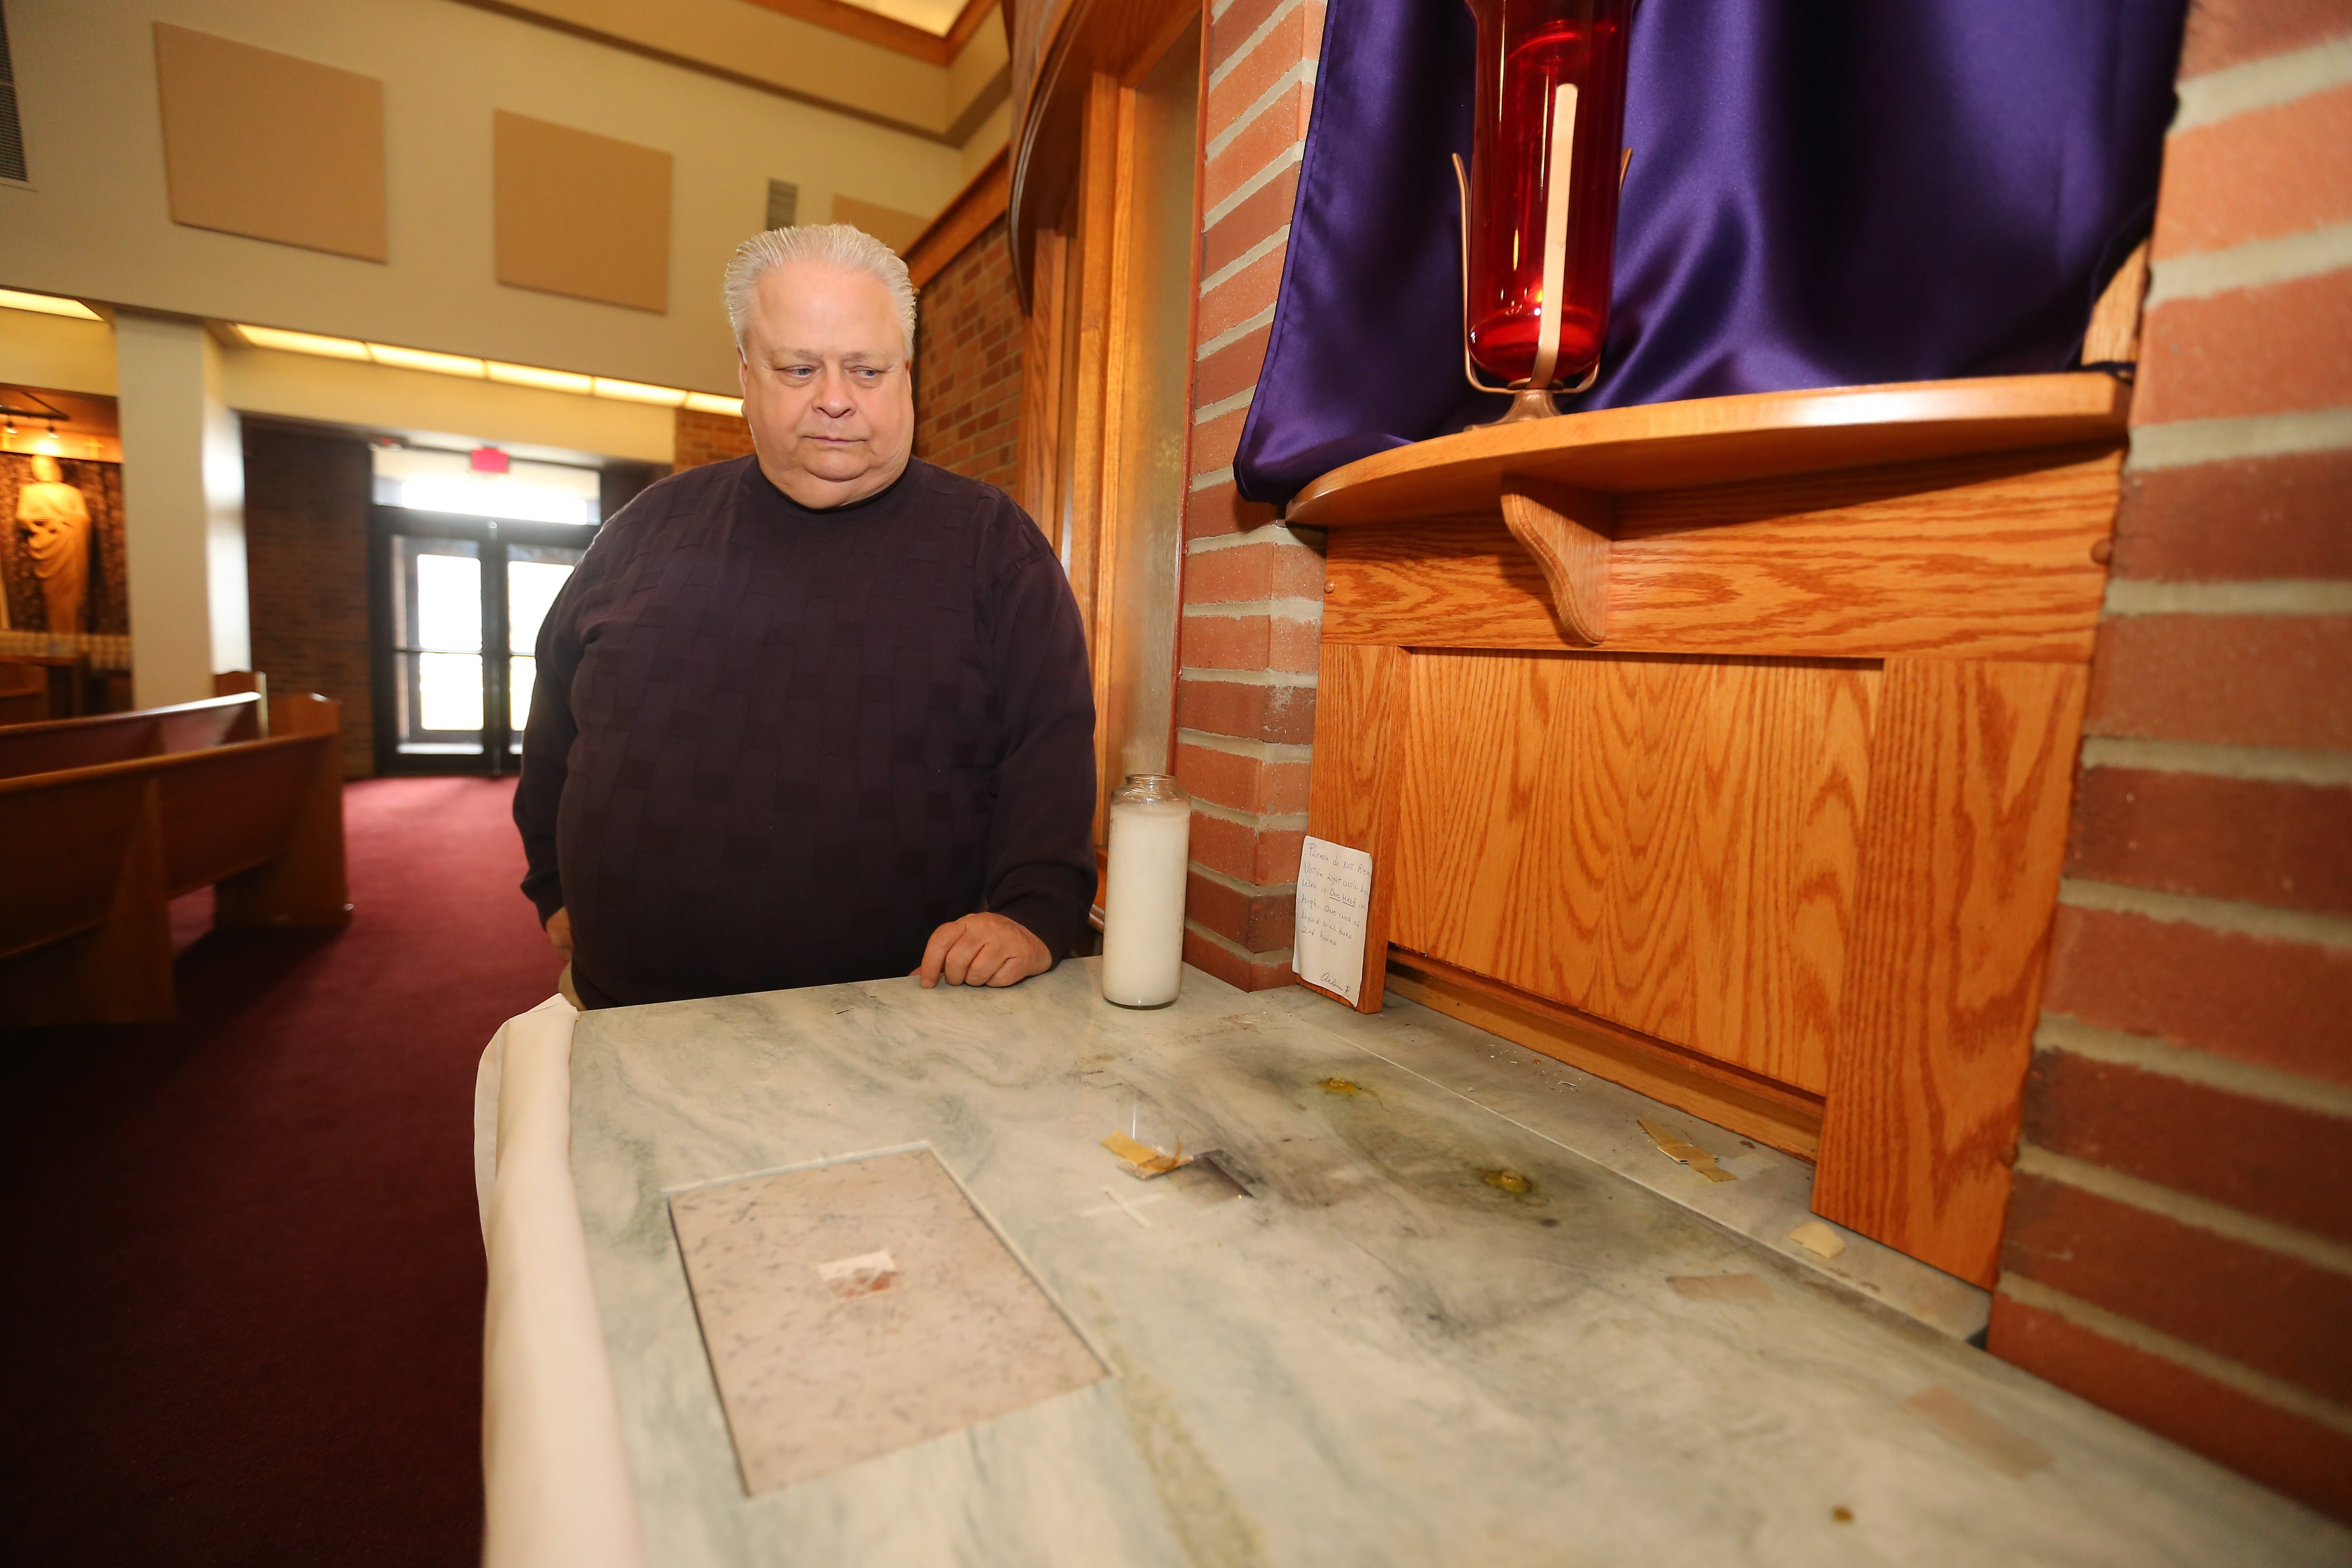 Rev. James Judge, pastor of St. Martin of Tours Catholic Church on Abbott Road, looks at empty spot on altar for tabernacle, which holds sacred hosts. It was stolen at about 1 p.m. Wednesday.